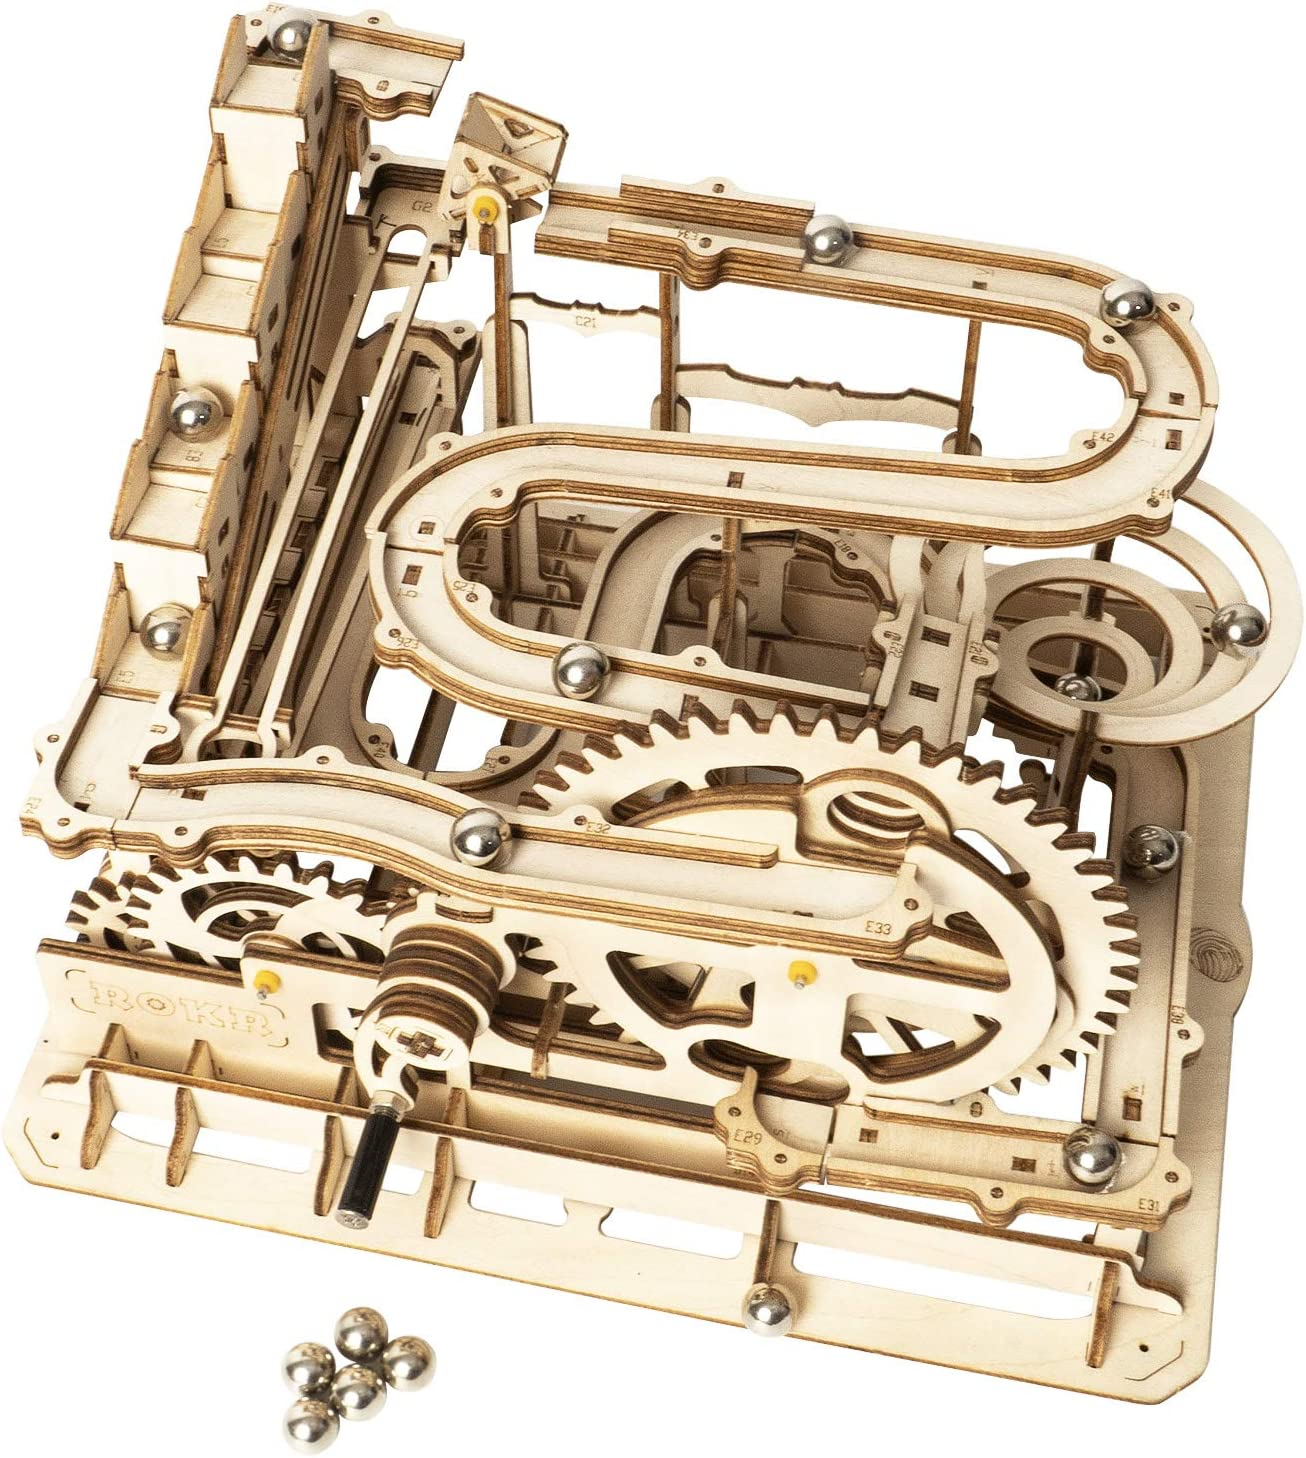 Amazon Com Rokr Marble Run Wooden Model Kits 3d Puzzle Mechanical Puzzles For Teens And Adults Waterwheel Coaster Toys Games